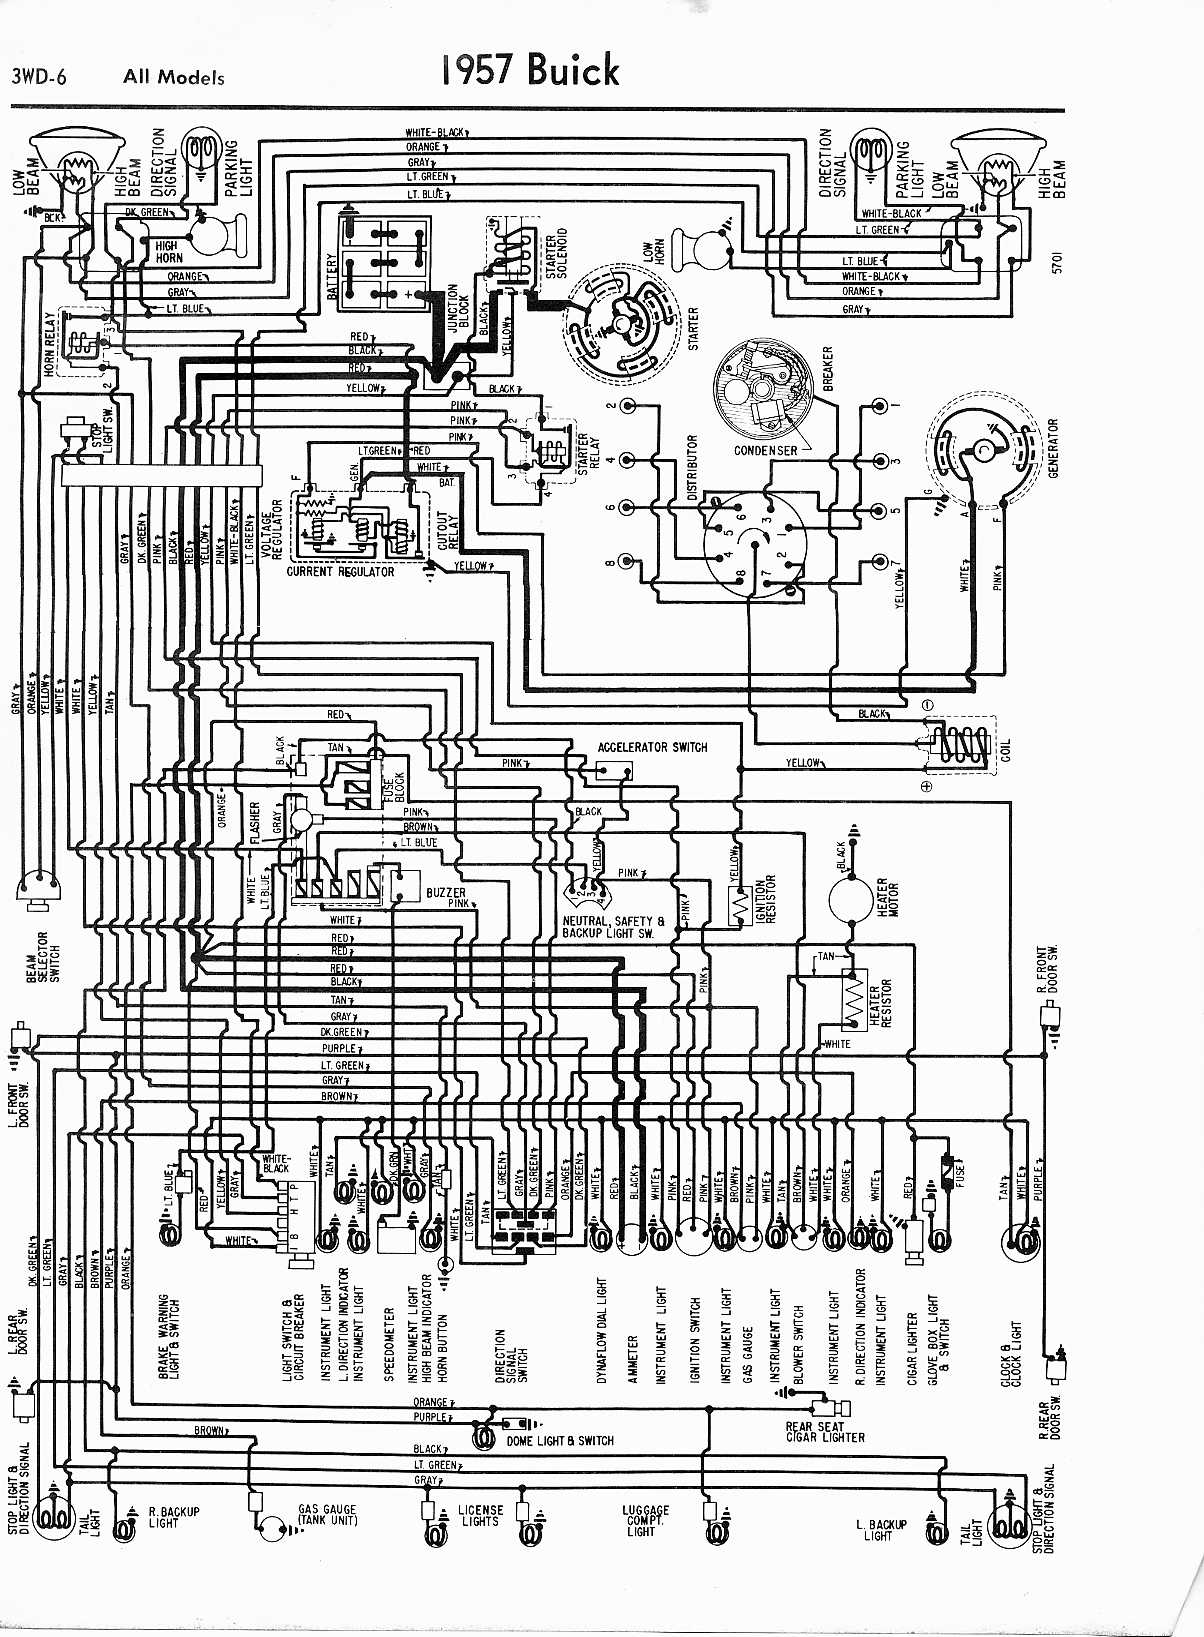 1967 Buick Riviera Fuse Box Starting Know About Wiring Diagram Chrysler Sebring What Do I Check For The O2 Sensors On 1966 Simple Rh David Huggett Co Uk